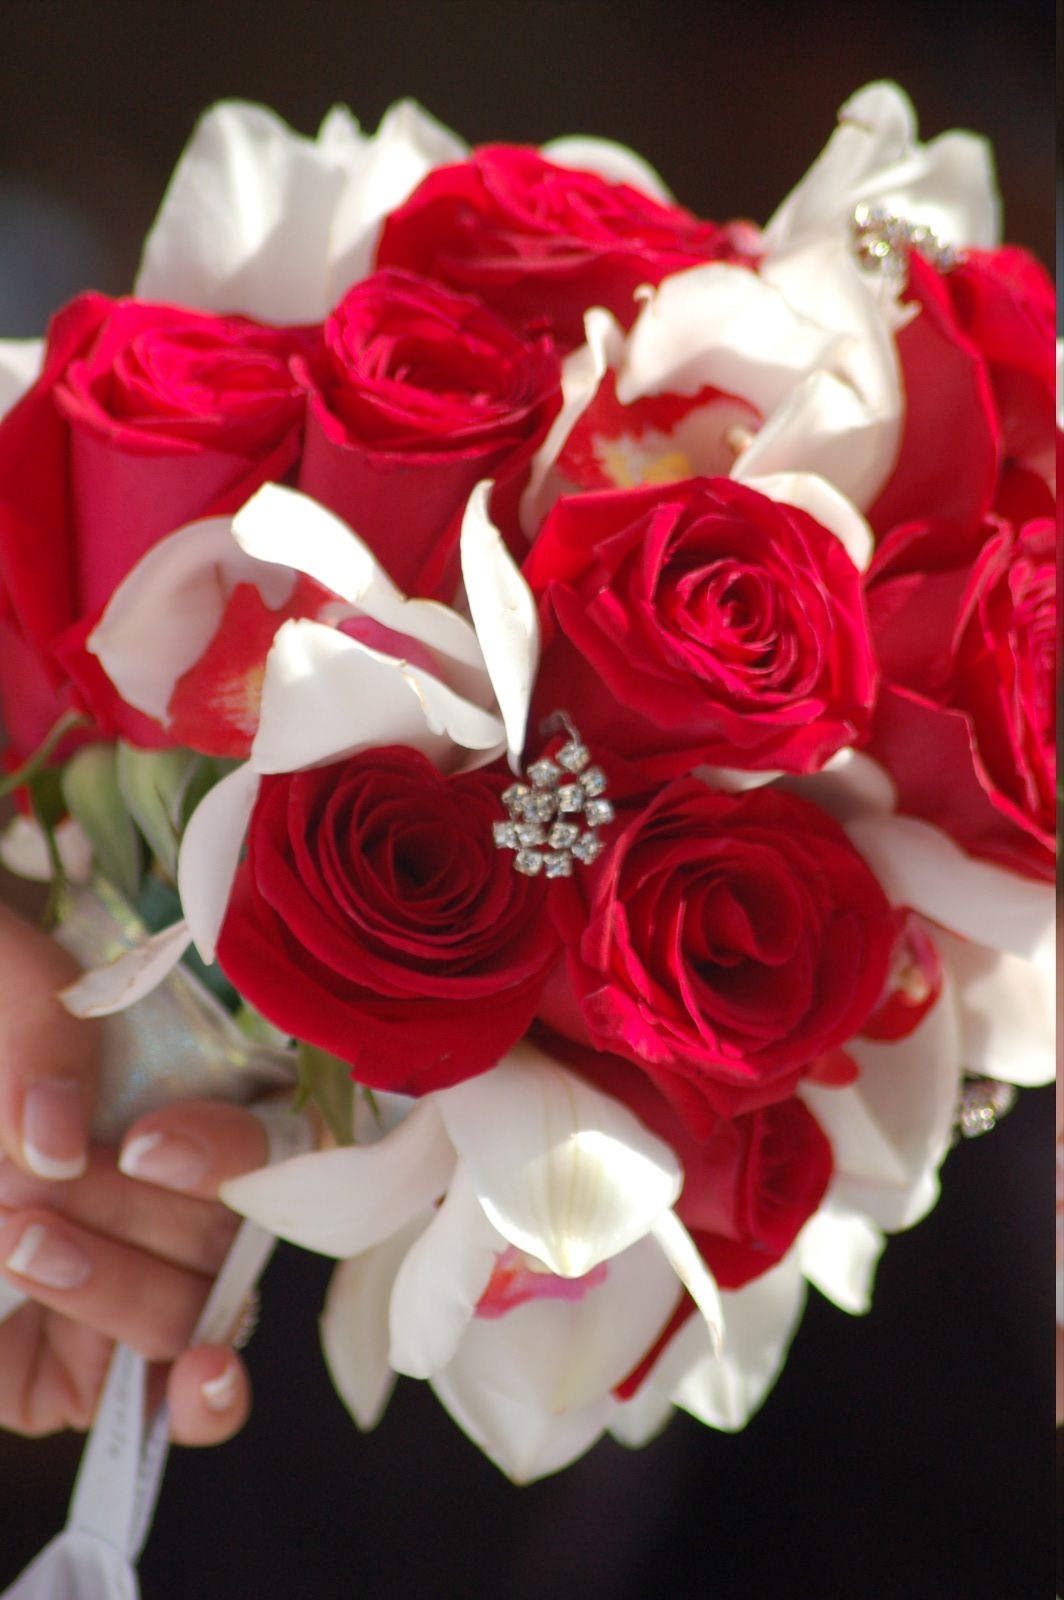 Amazing online wedding flowers wedding flowers picture wedding red and white rose wedding flower bouquet with rhinestone jewels i love love this one dhlflorist Choice Image